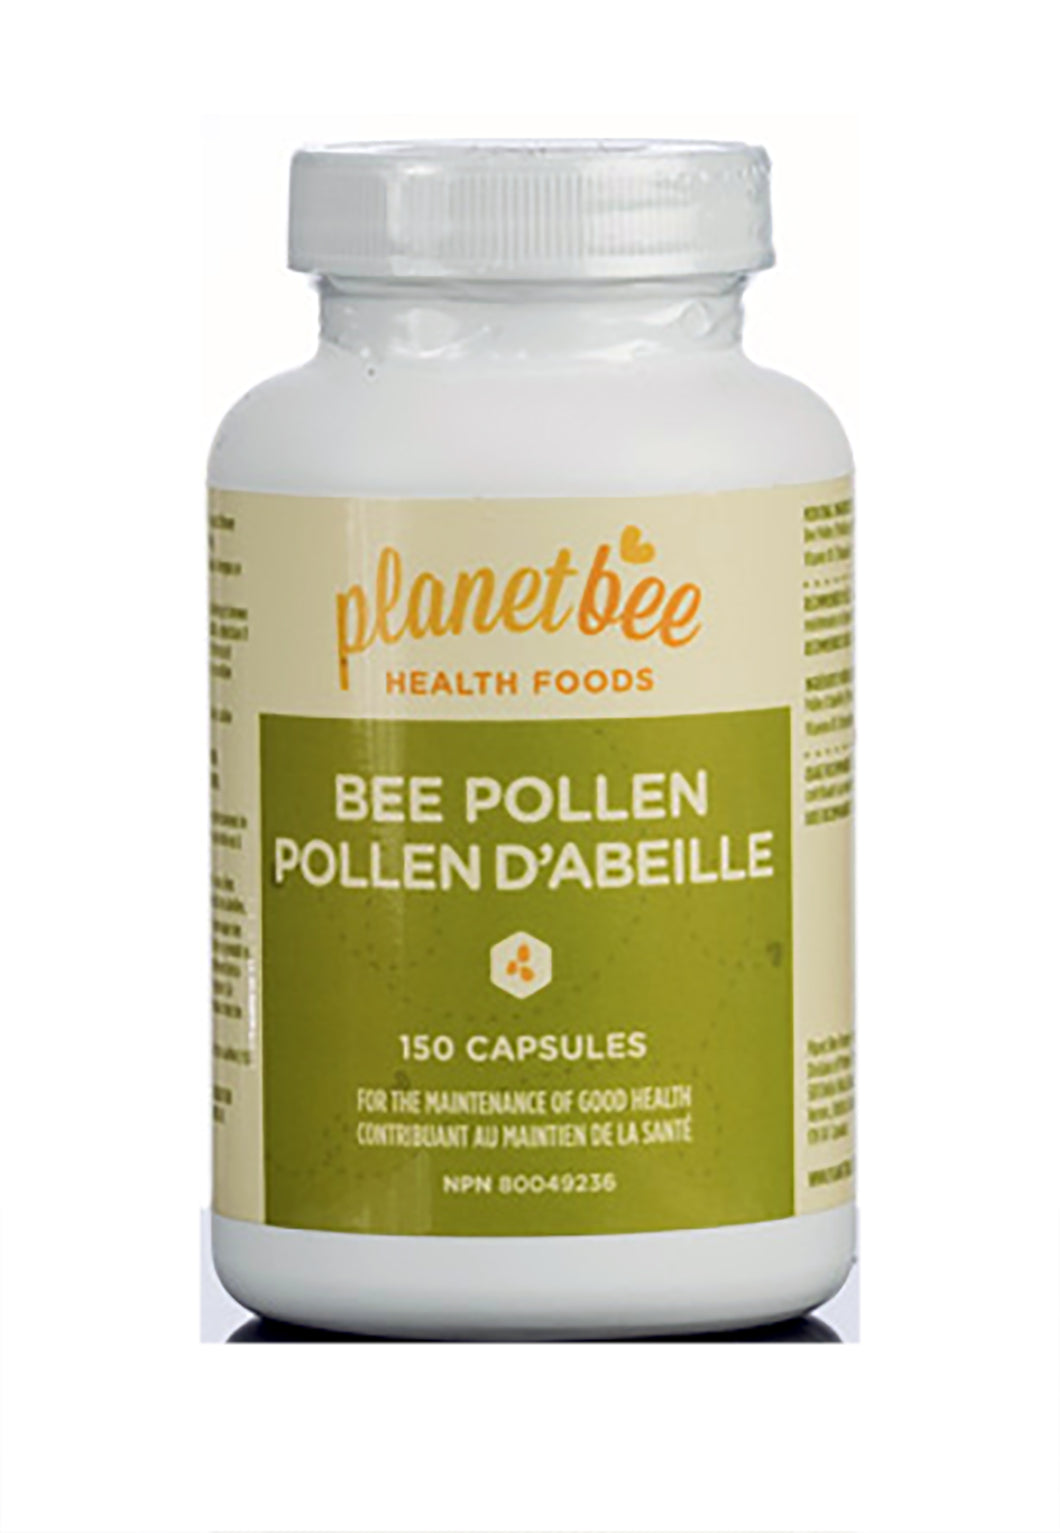 bee pollen vitamin suppliment capsule